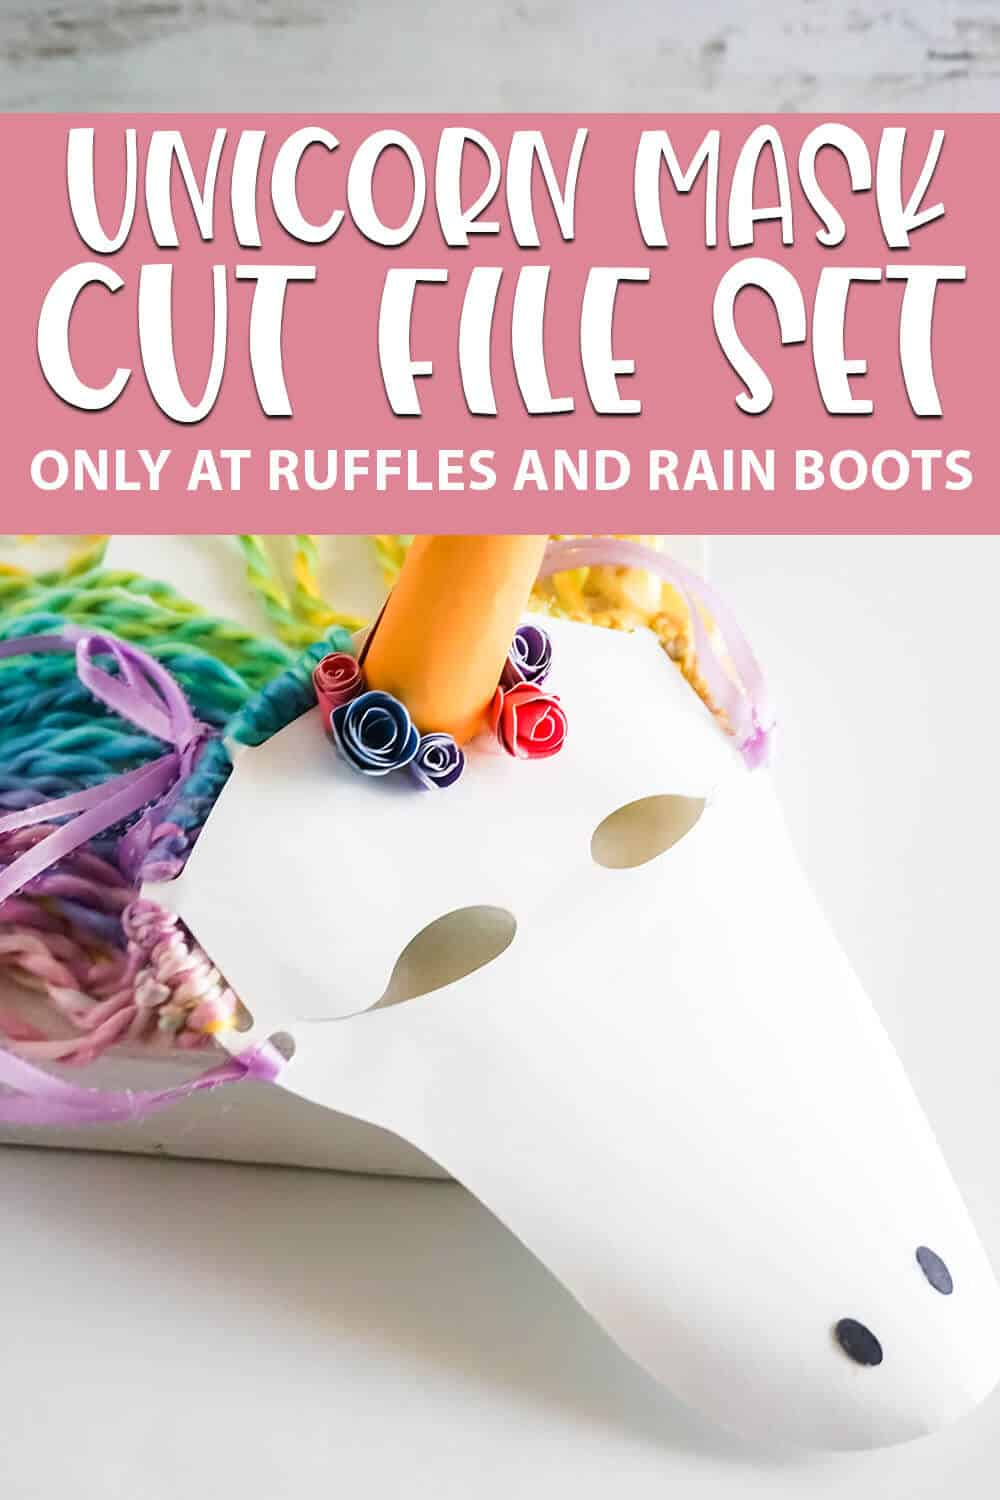 easy kids face mask craft with text which reads UNICORN MASK CUT FILE SET for cricut or silhouette